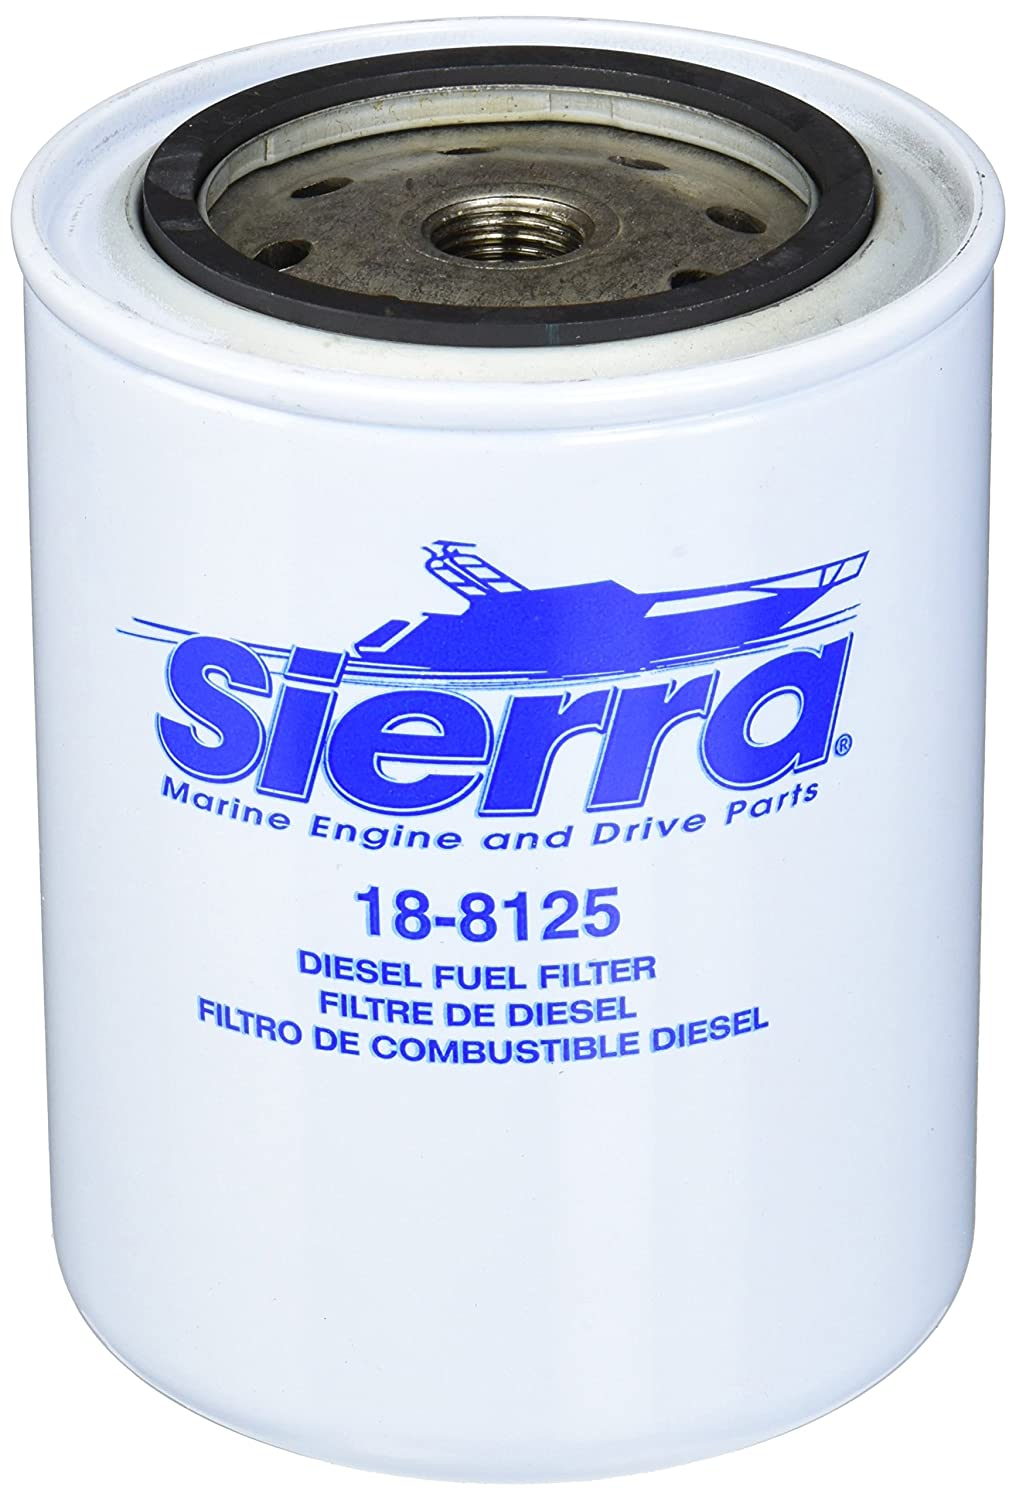 Sierra 18 8125 Diesel Fuel Filter For Volvo Penta Marine 2009 Jeep Wrangler Engines 3583443 Automotive